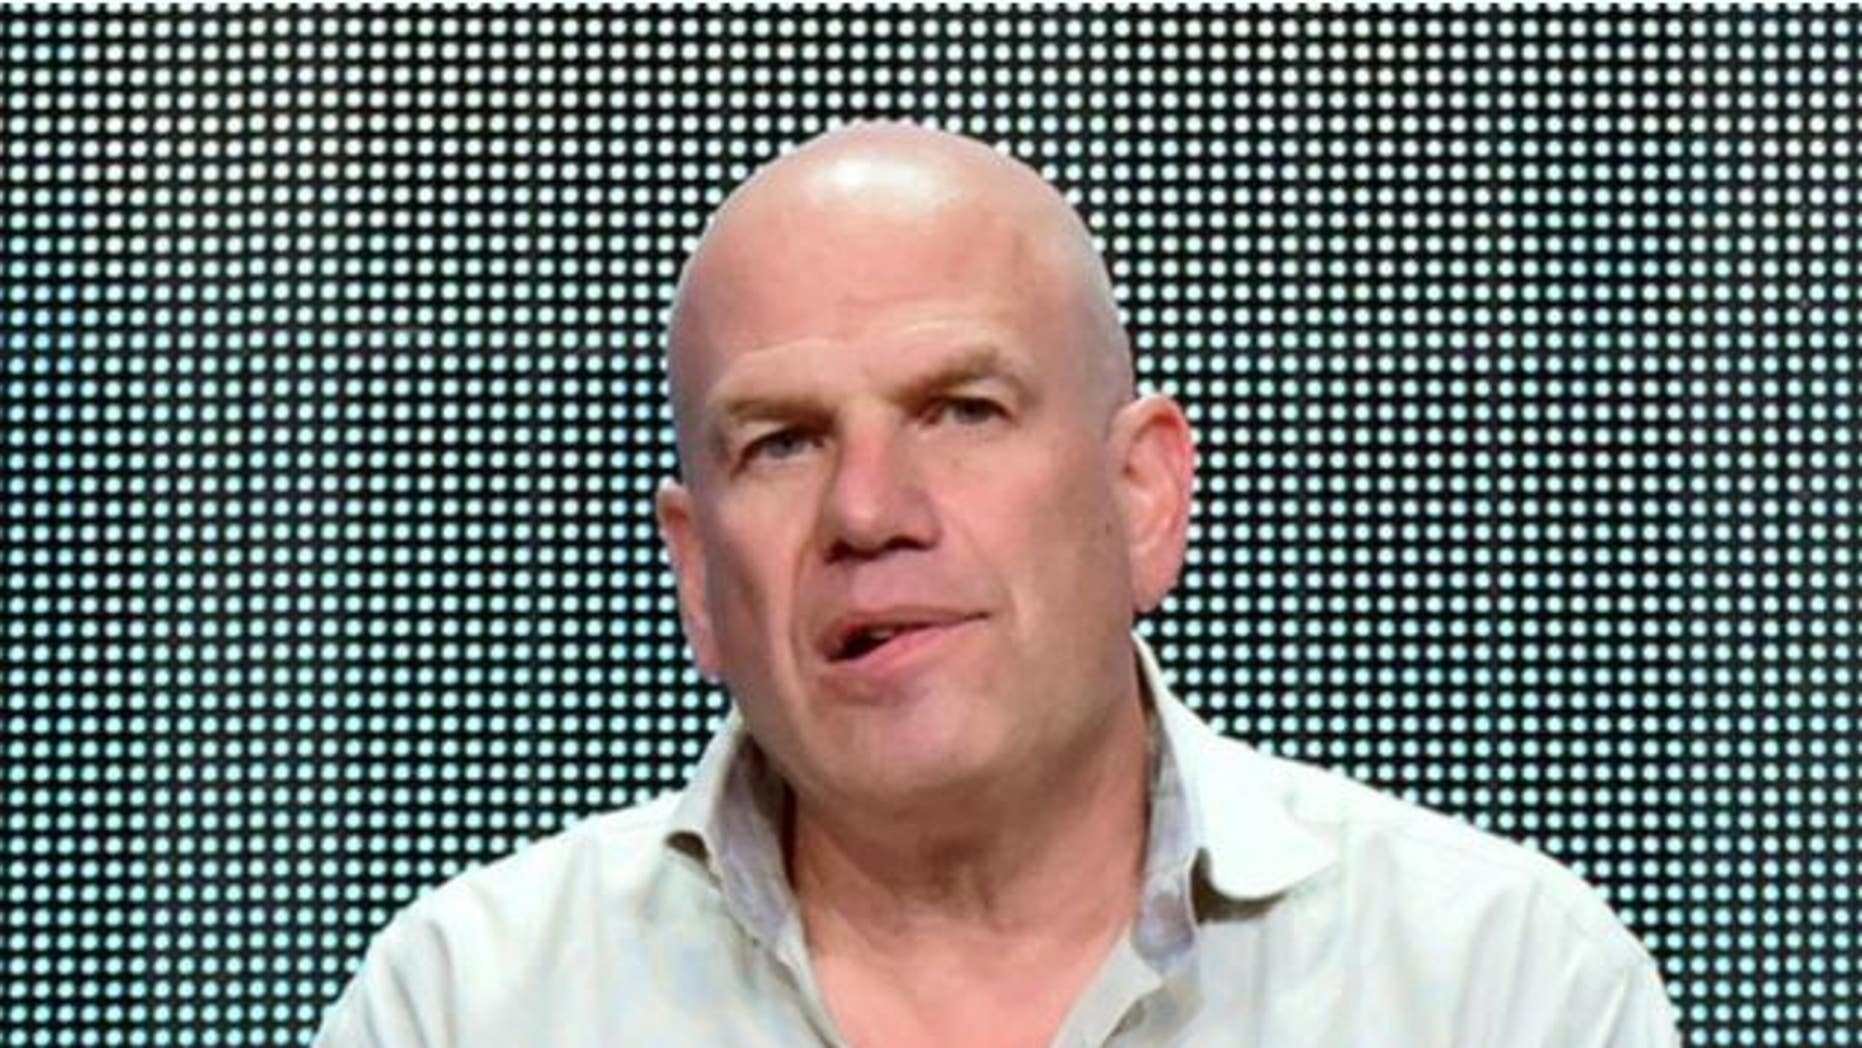 David Simon, creator of HBO's The Wire, has been banned from Twitter after several tweets with supporters of President Donald Trump.